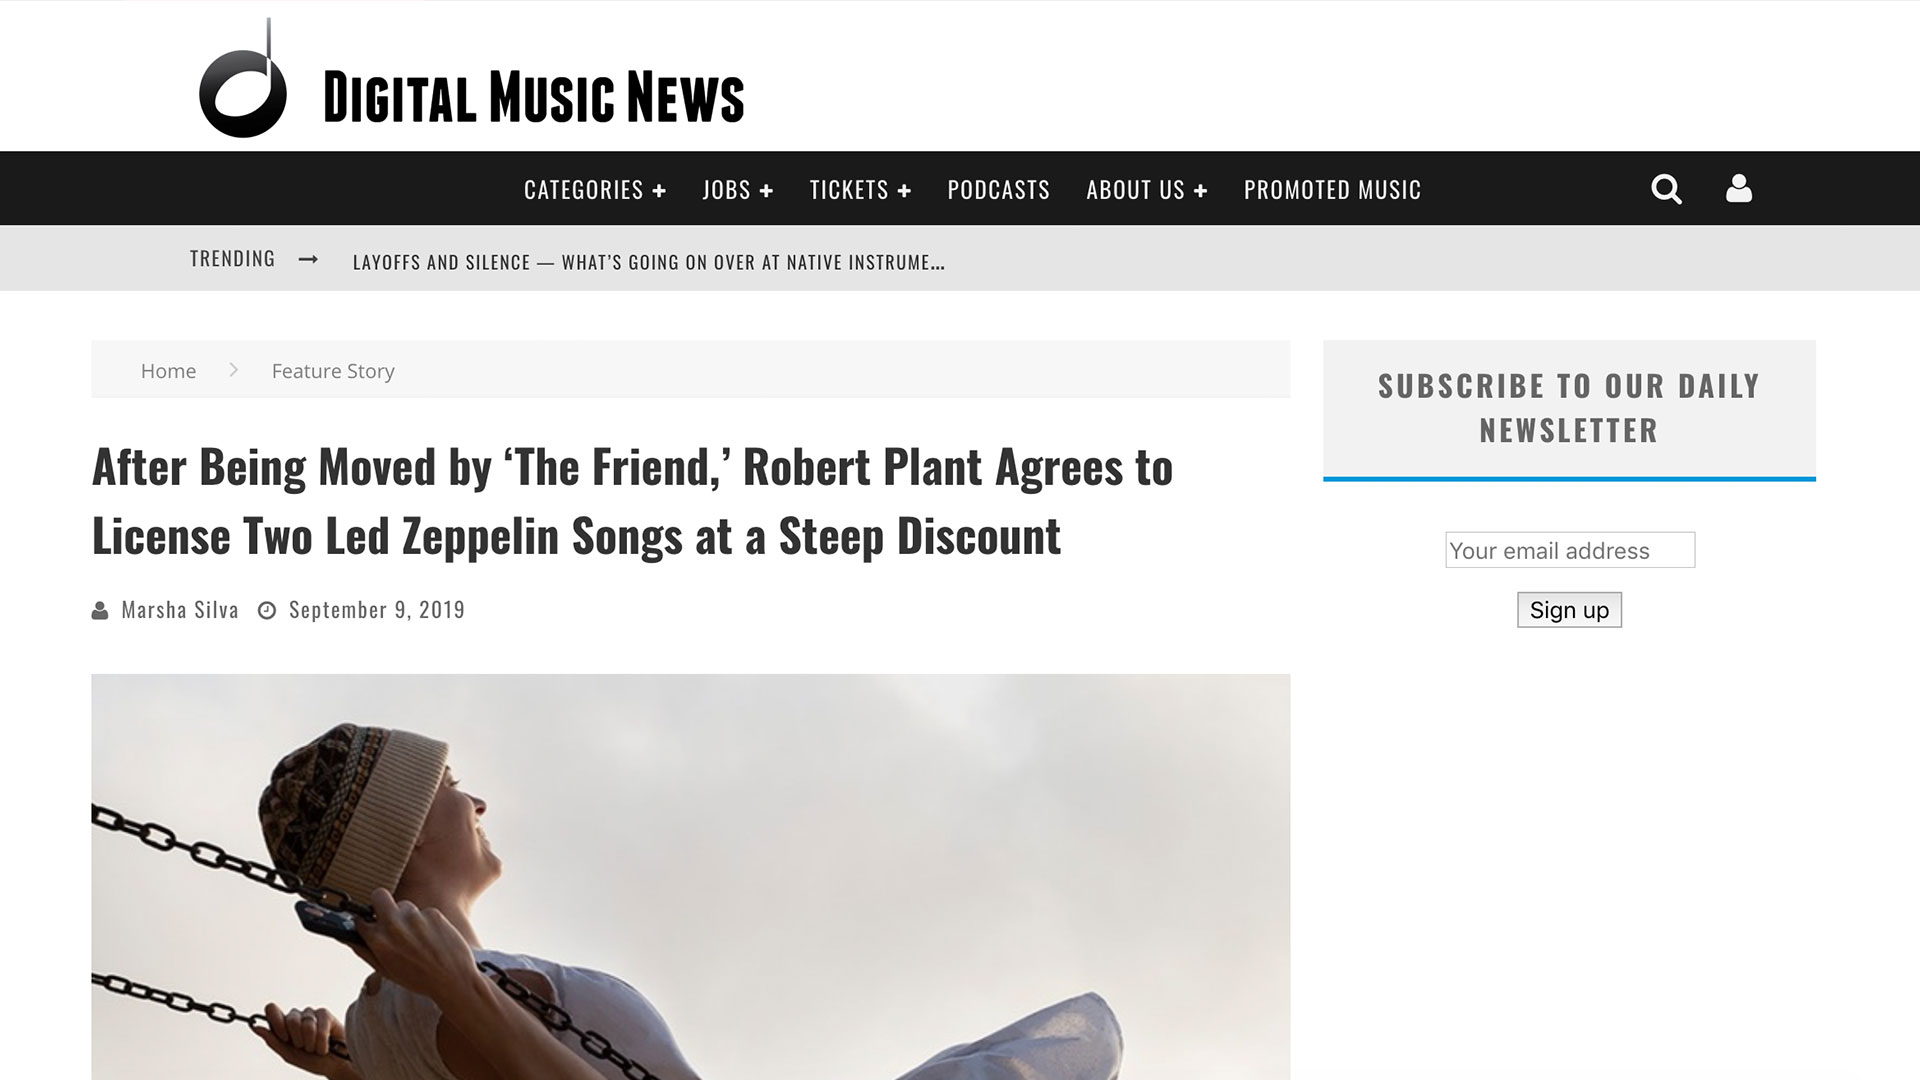 Fairness Rocks News After Being Moved by 'The Friend,' Robert Plant Agrees to License Two Led Zeppelin Songs at a Steep Discount